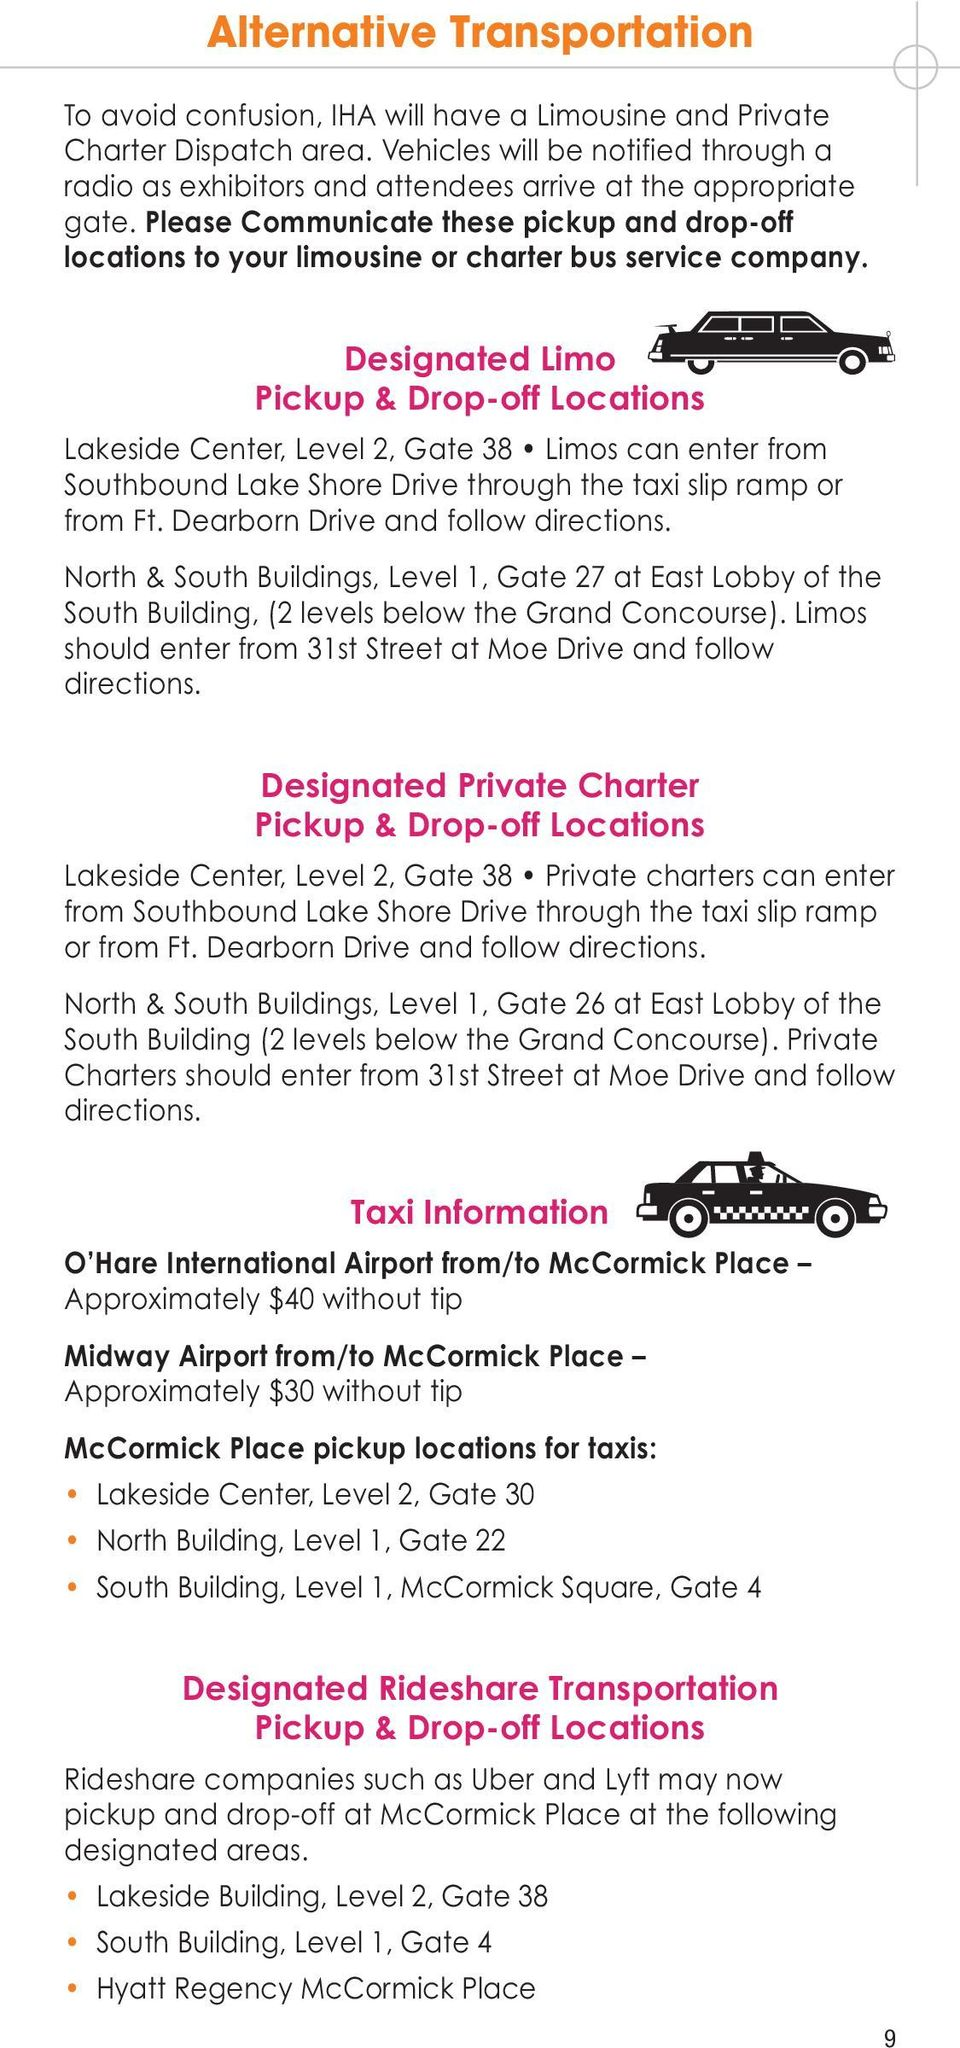 Please Communicate these pickup and drop-off locations to your limousine or charter bus service company.